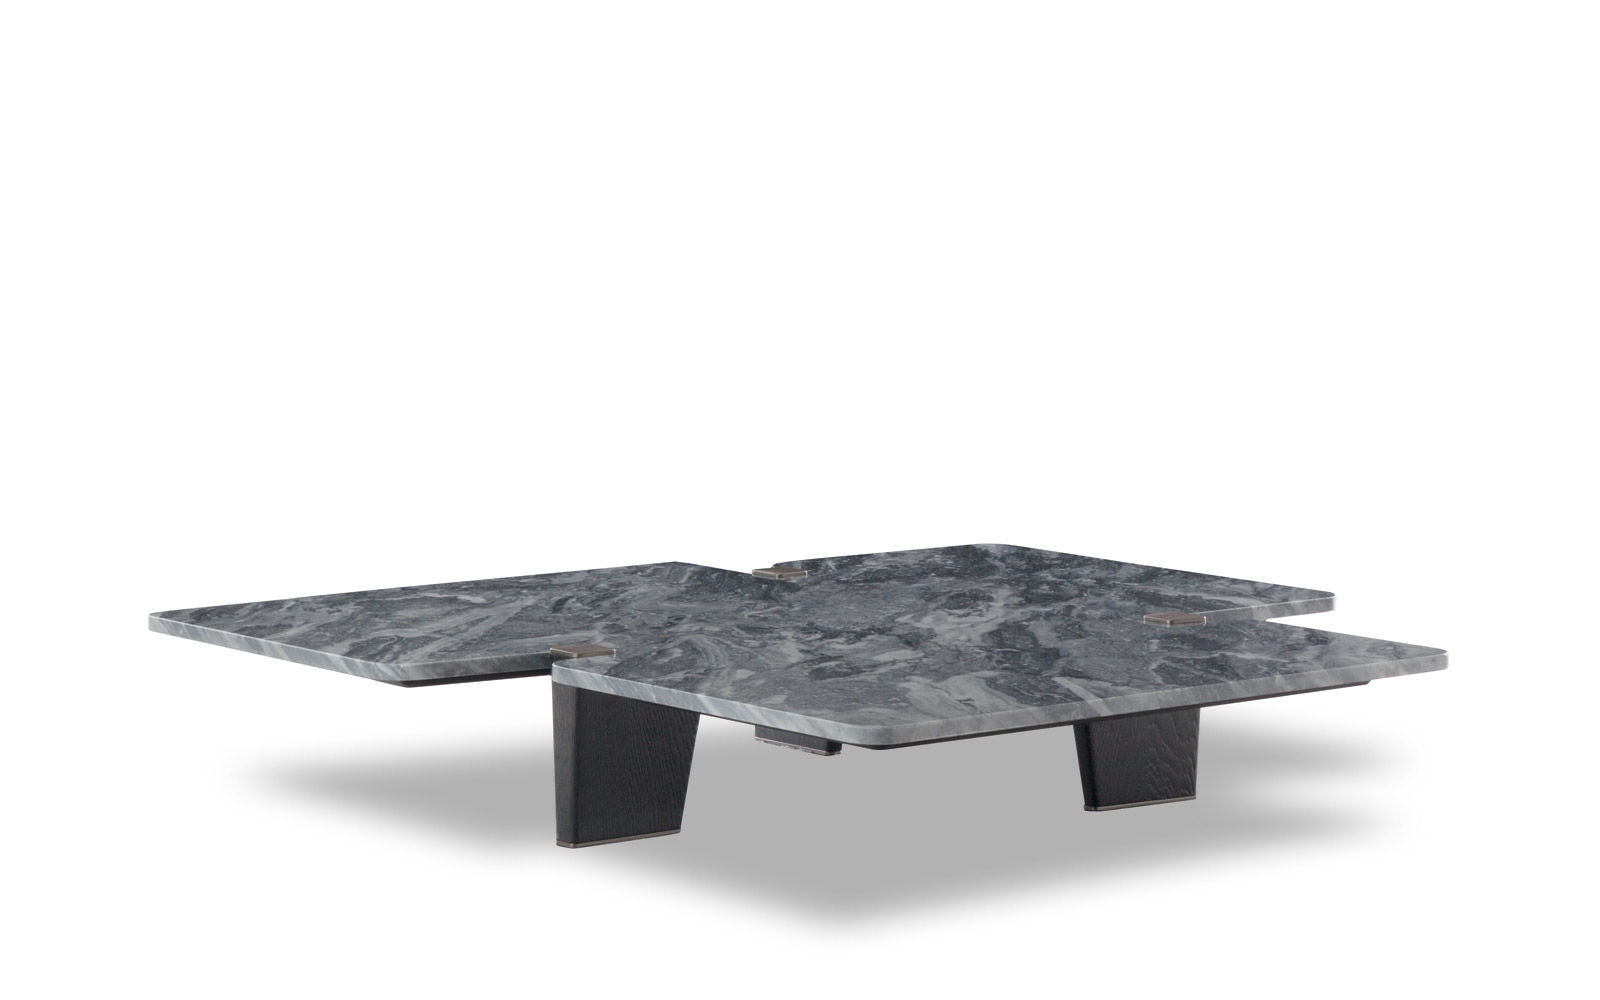 JACOB | COFFEE TABLES - EN top 25 stunning center table ideas Top 25 Stunning Center Table Ideas 11515 z 11515 z JACOB 01 SCONT the most exquisite center table ideas The Most Exquisite Center Table Ideas 11515 z 11515 z JACOB 01 SCONT